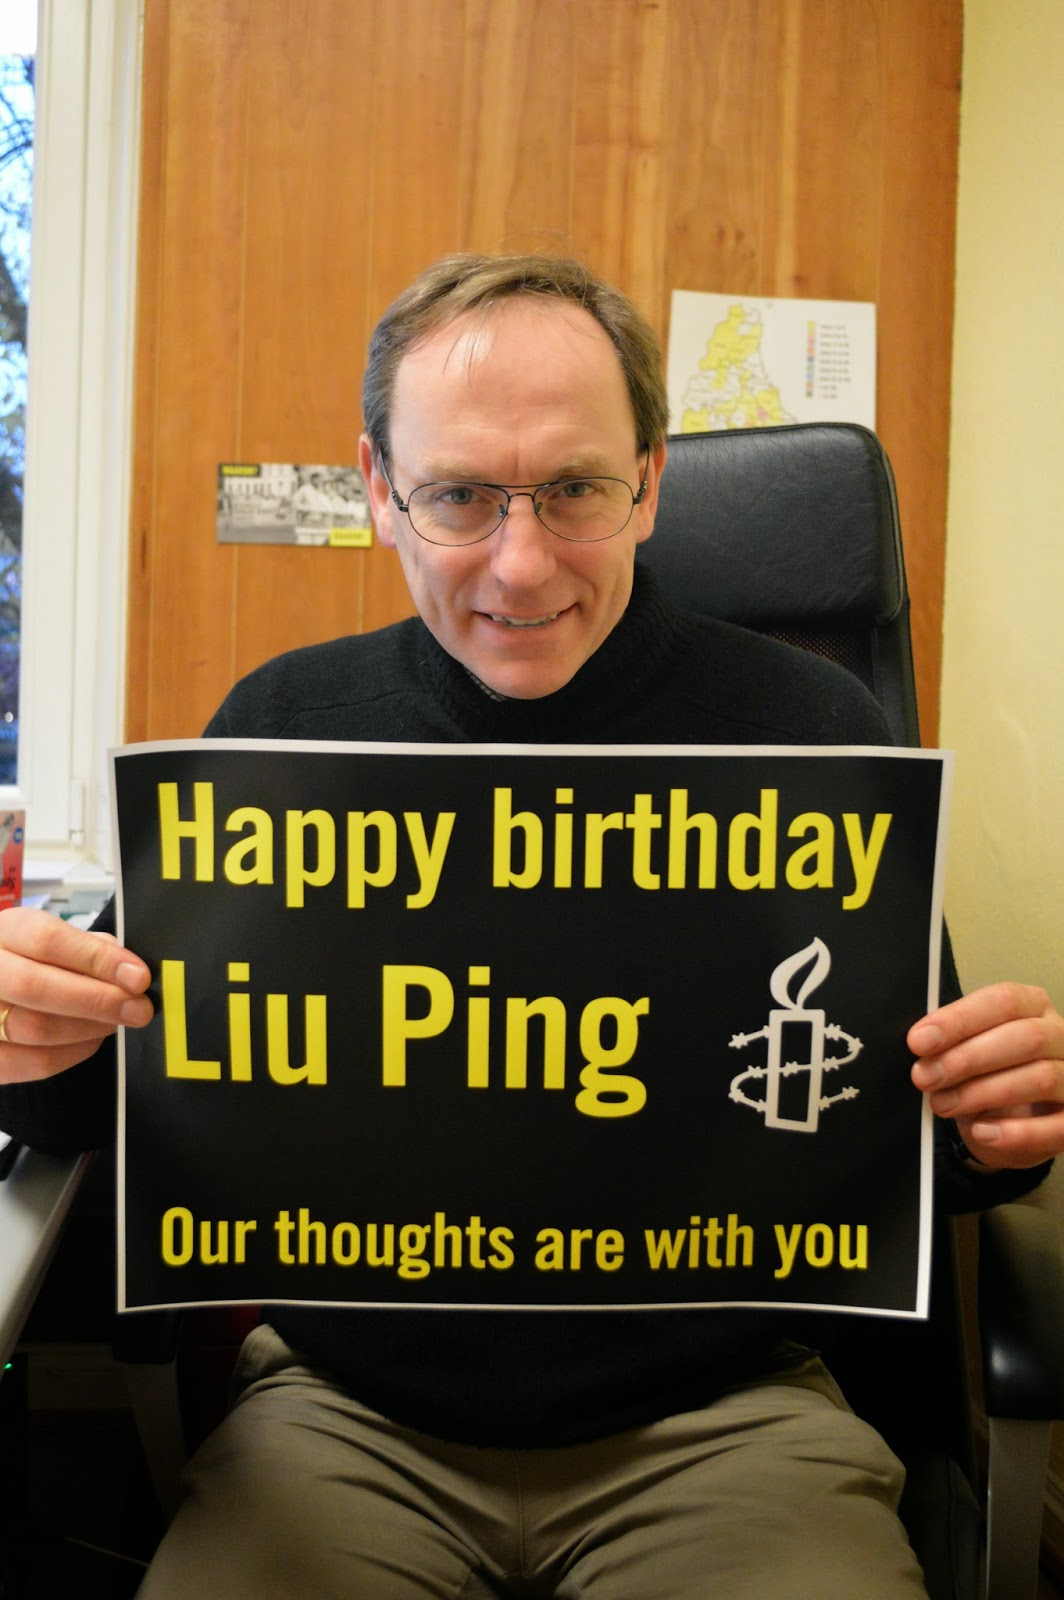 http://amnesty-luxembourg-photos.blogspot.com/2014/12/happy-brithday-liu-ping.html